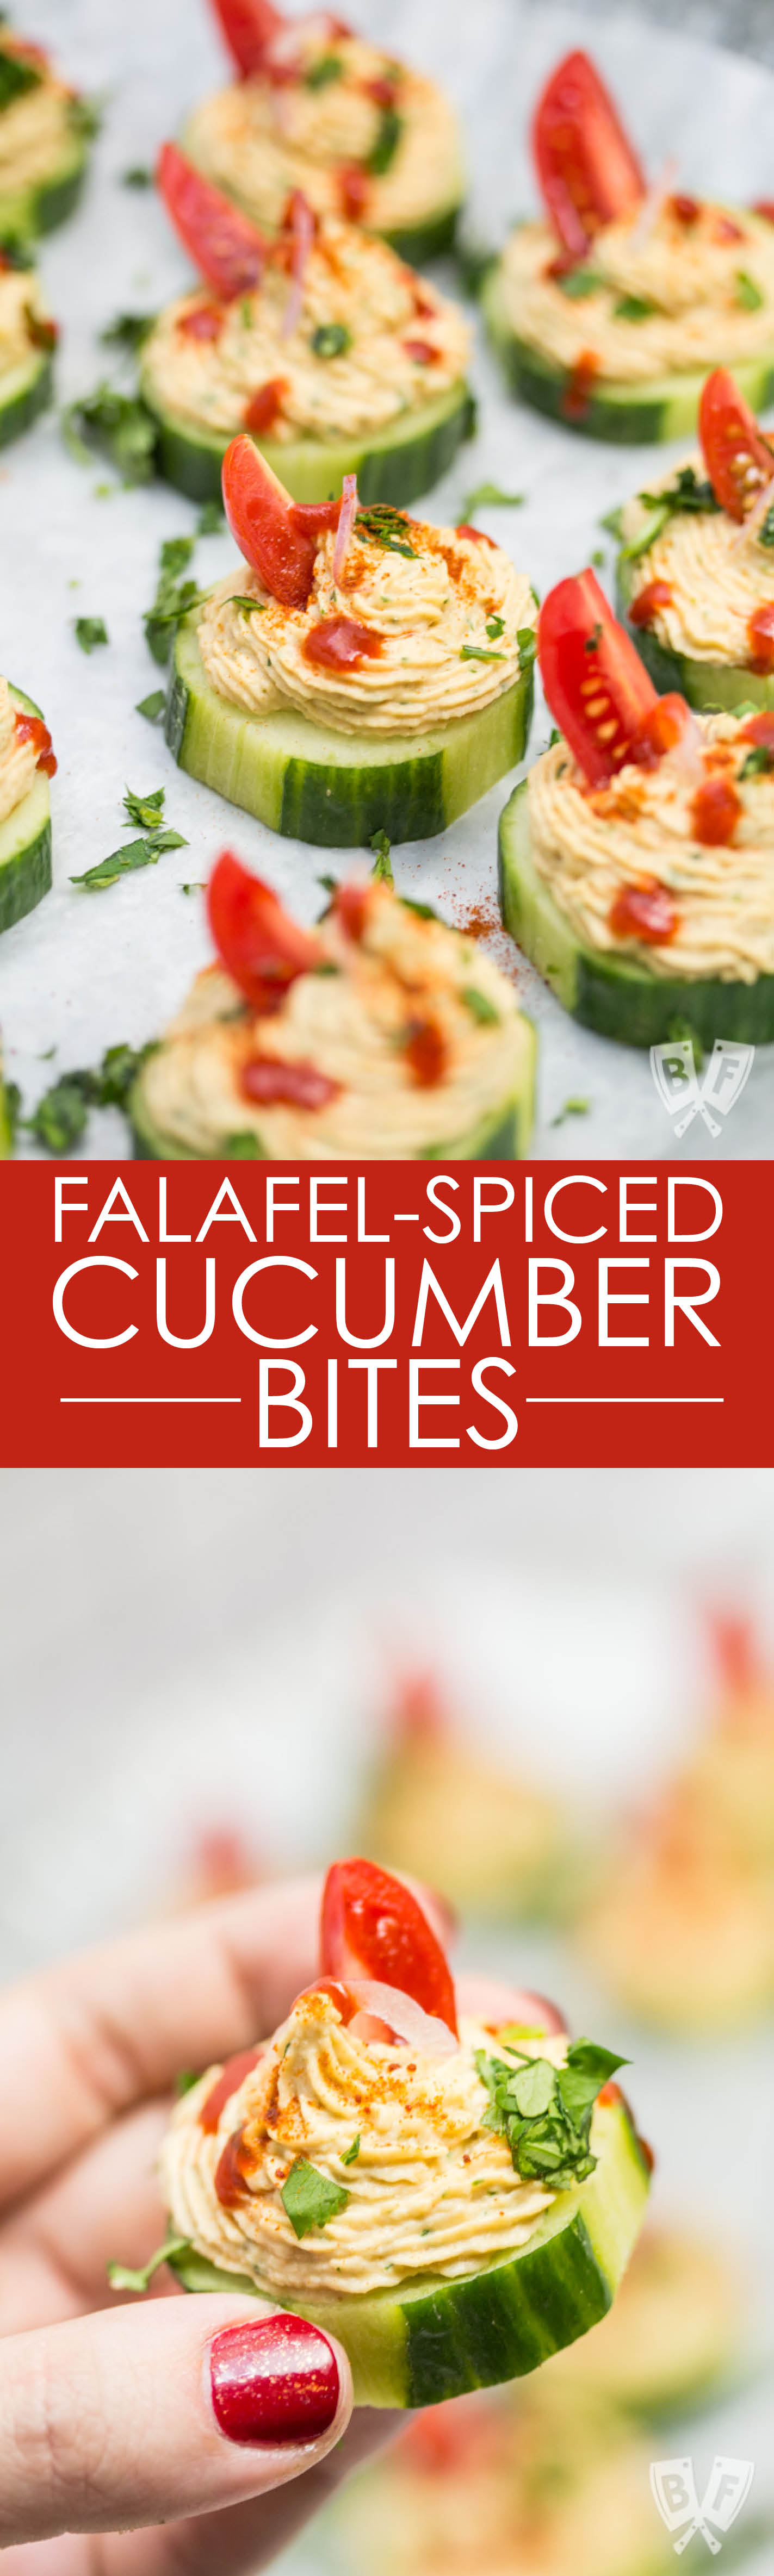 2 photos - one platter of cucumber slices topped with a spiced chickpea purée and 1 close up of a hand holding one of the cucumber slices.